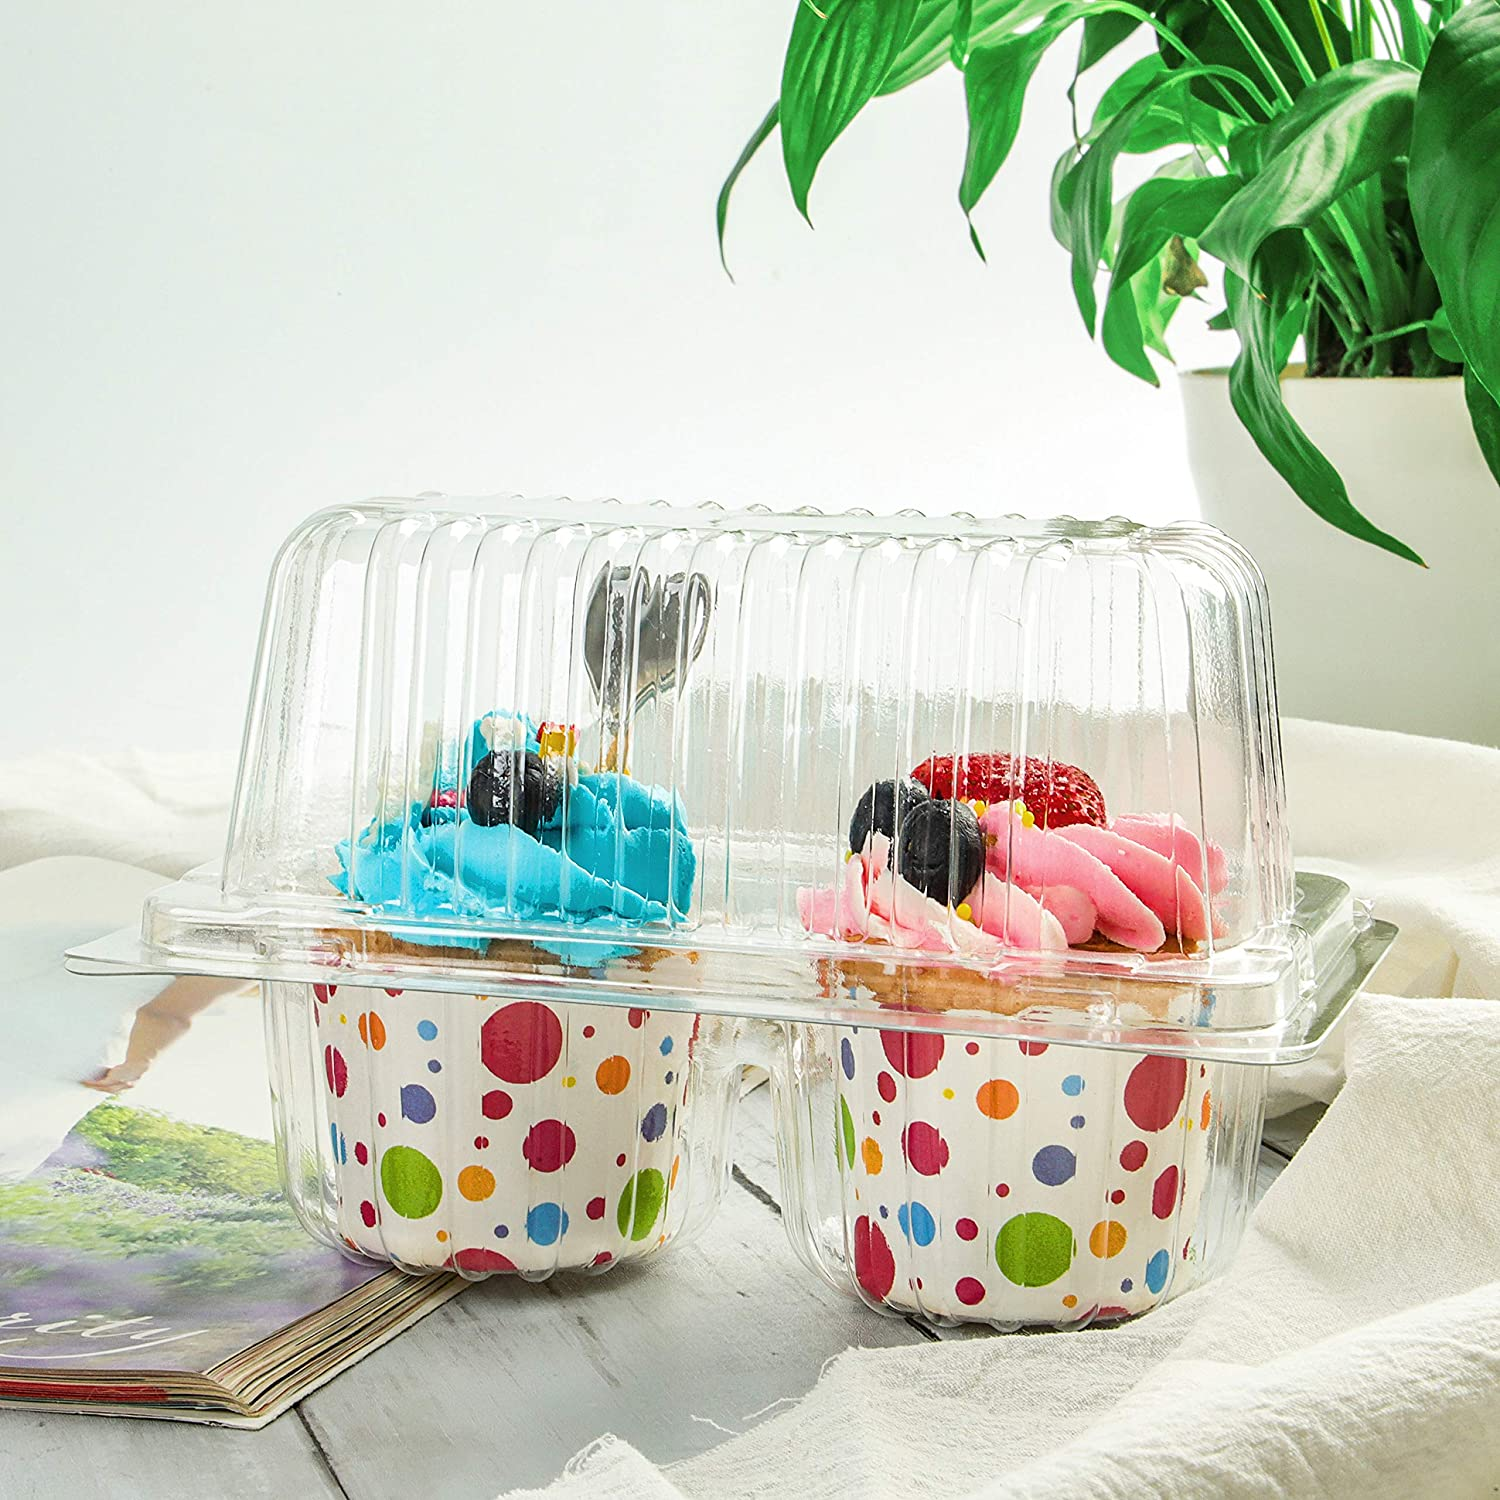 Cupcake Container Double Holder Plastic Containers Disposable Clear Carrier for Cupcakes to go Box Jumbo Domes Large Cup Cake Clamshell Packaging togo (Pack of 30)